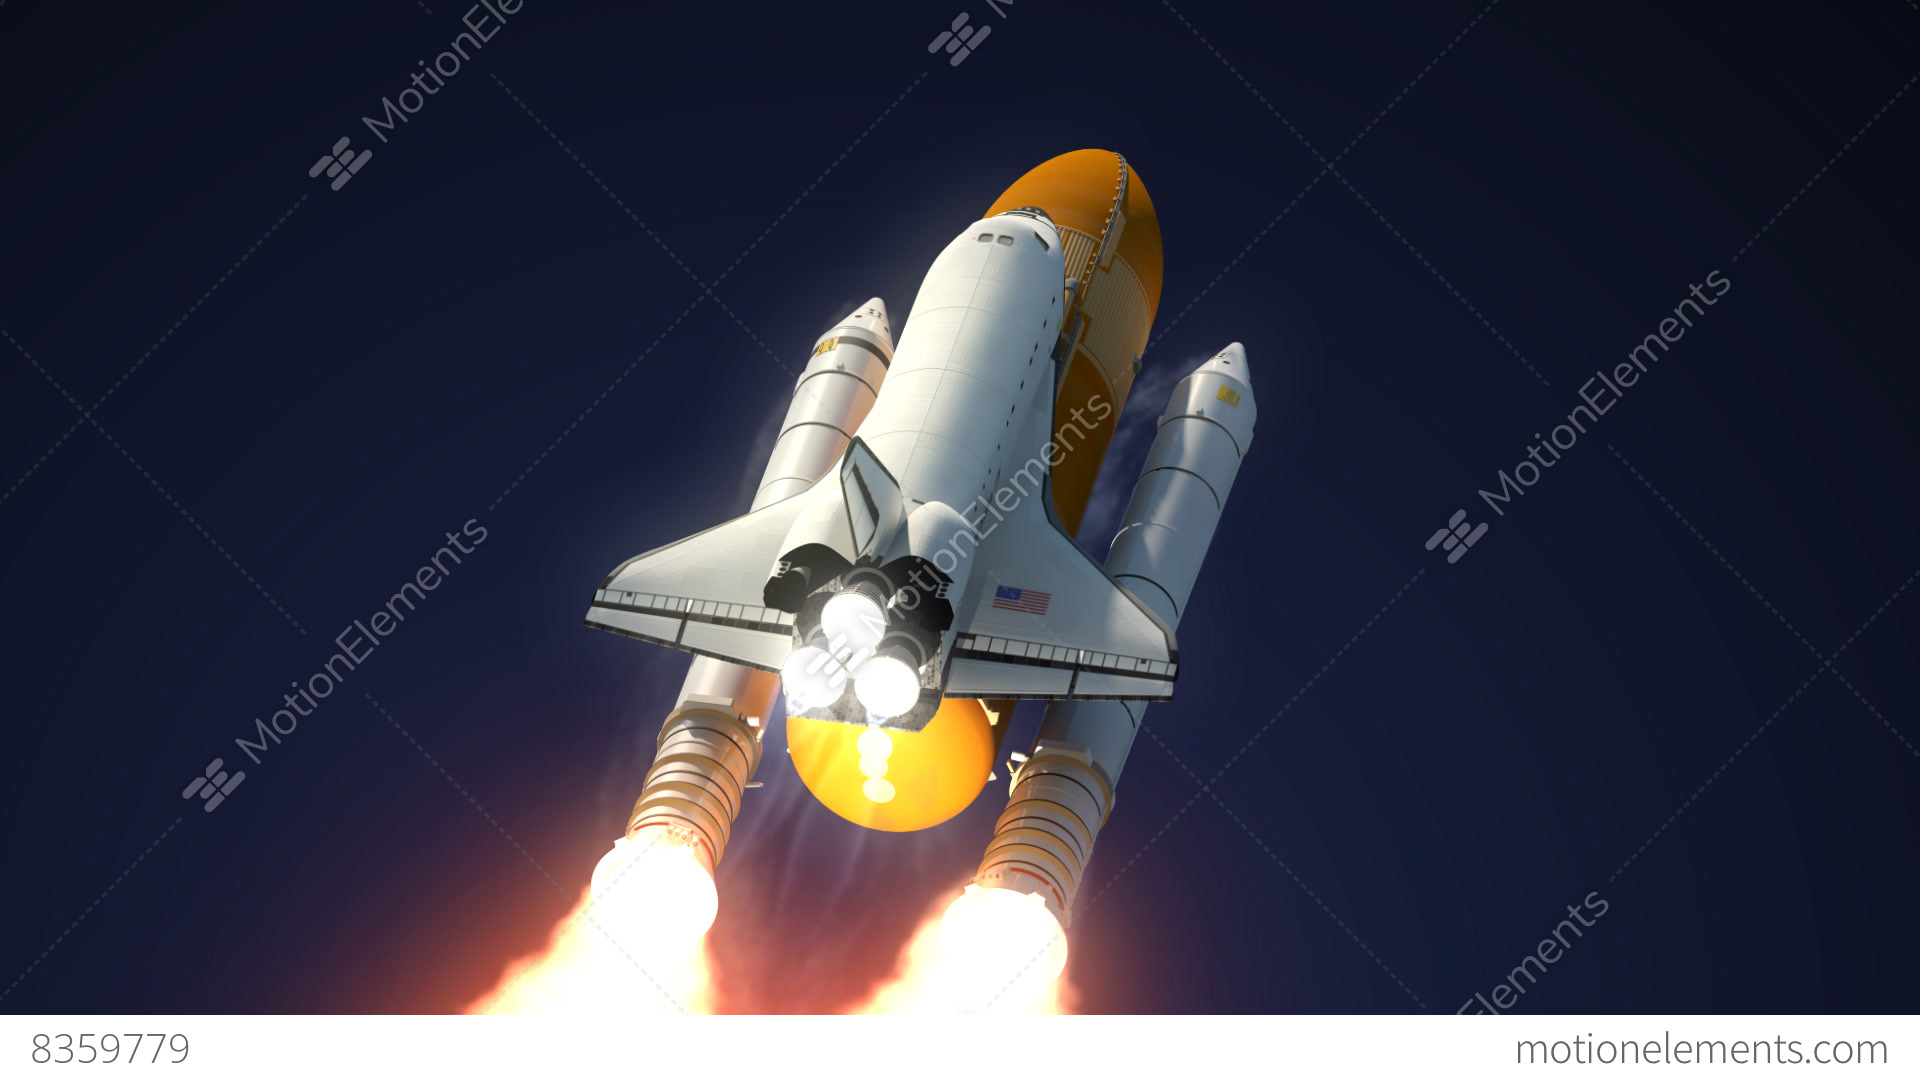 space shuttle launch booster separation - photo #14